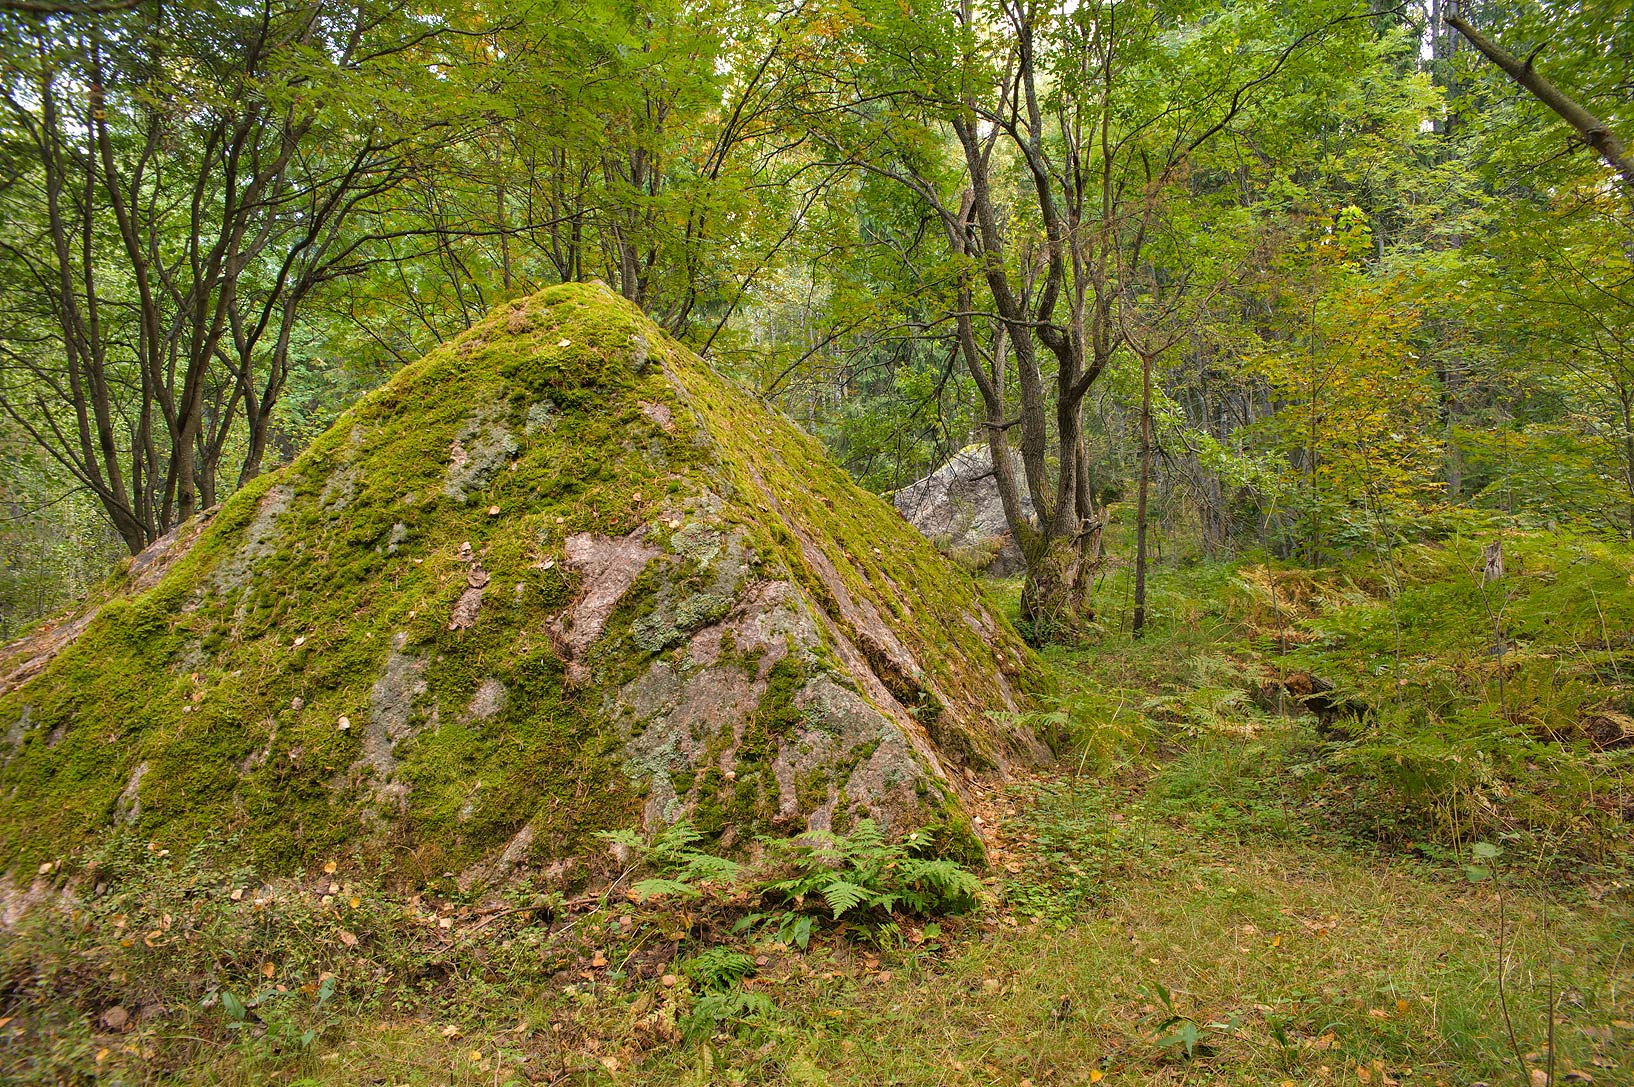 Mossy granite pyramid in north-west area of Monrepo (Mon Repos) Park. Vyborg, Russia